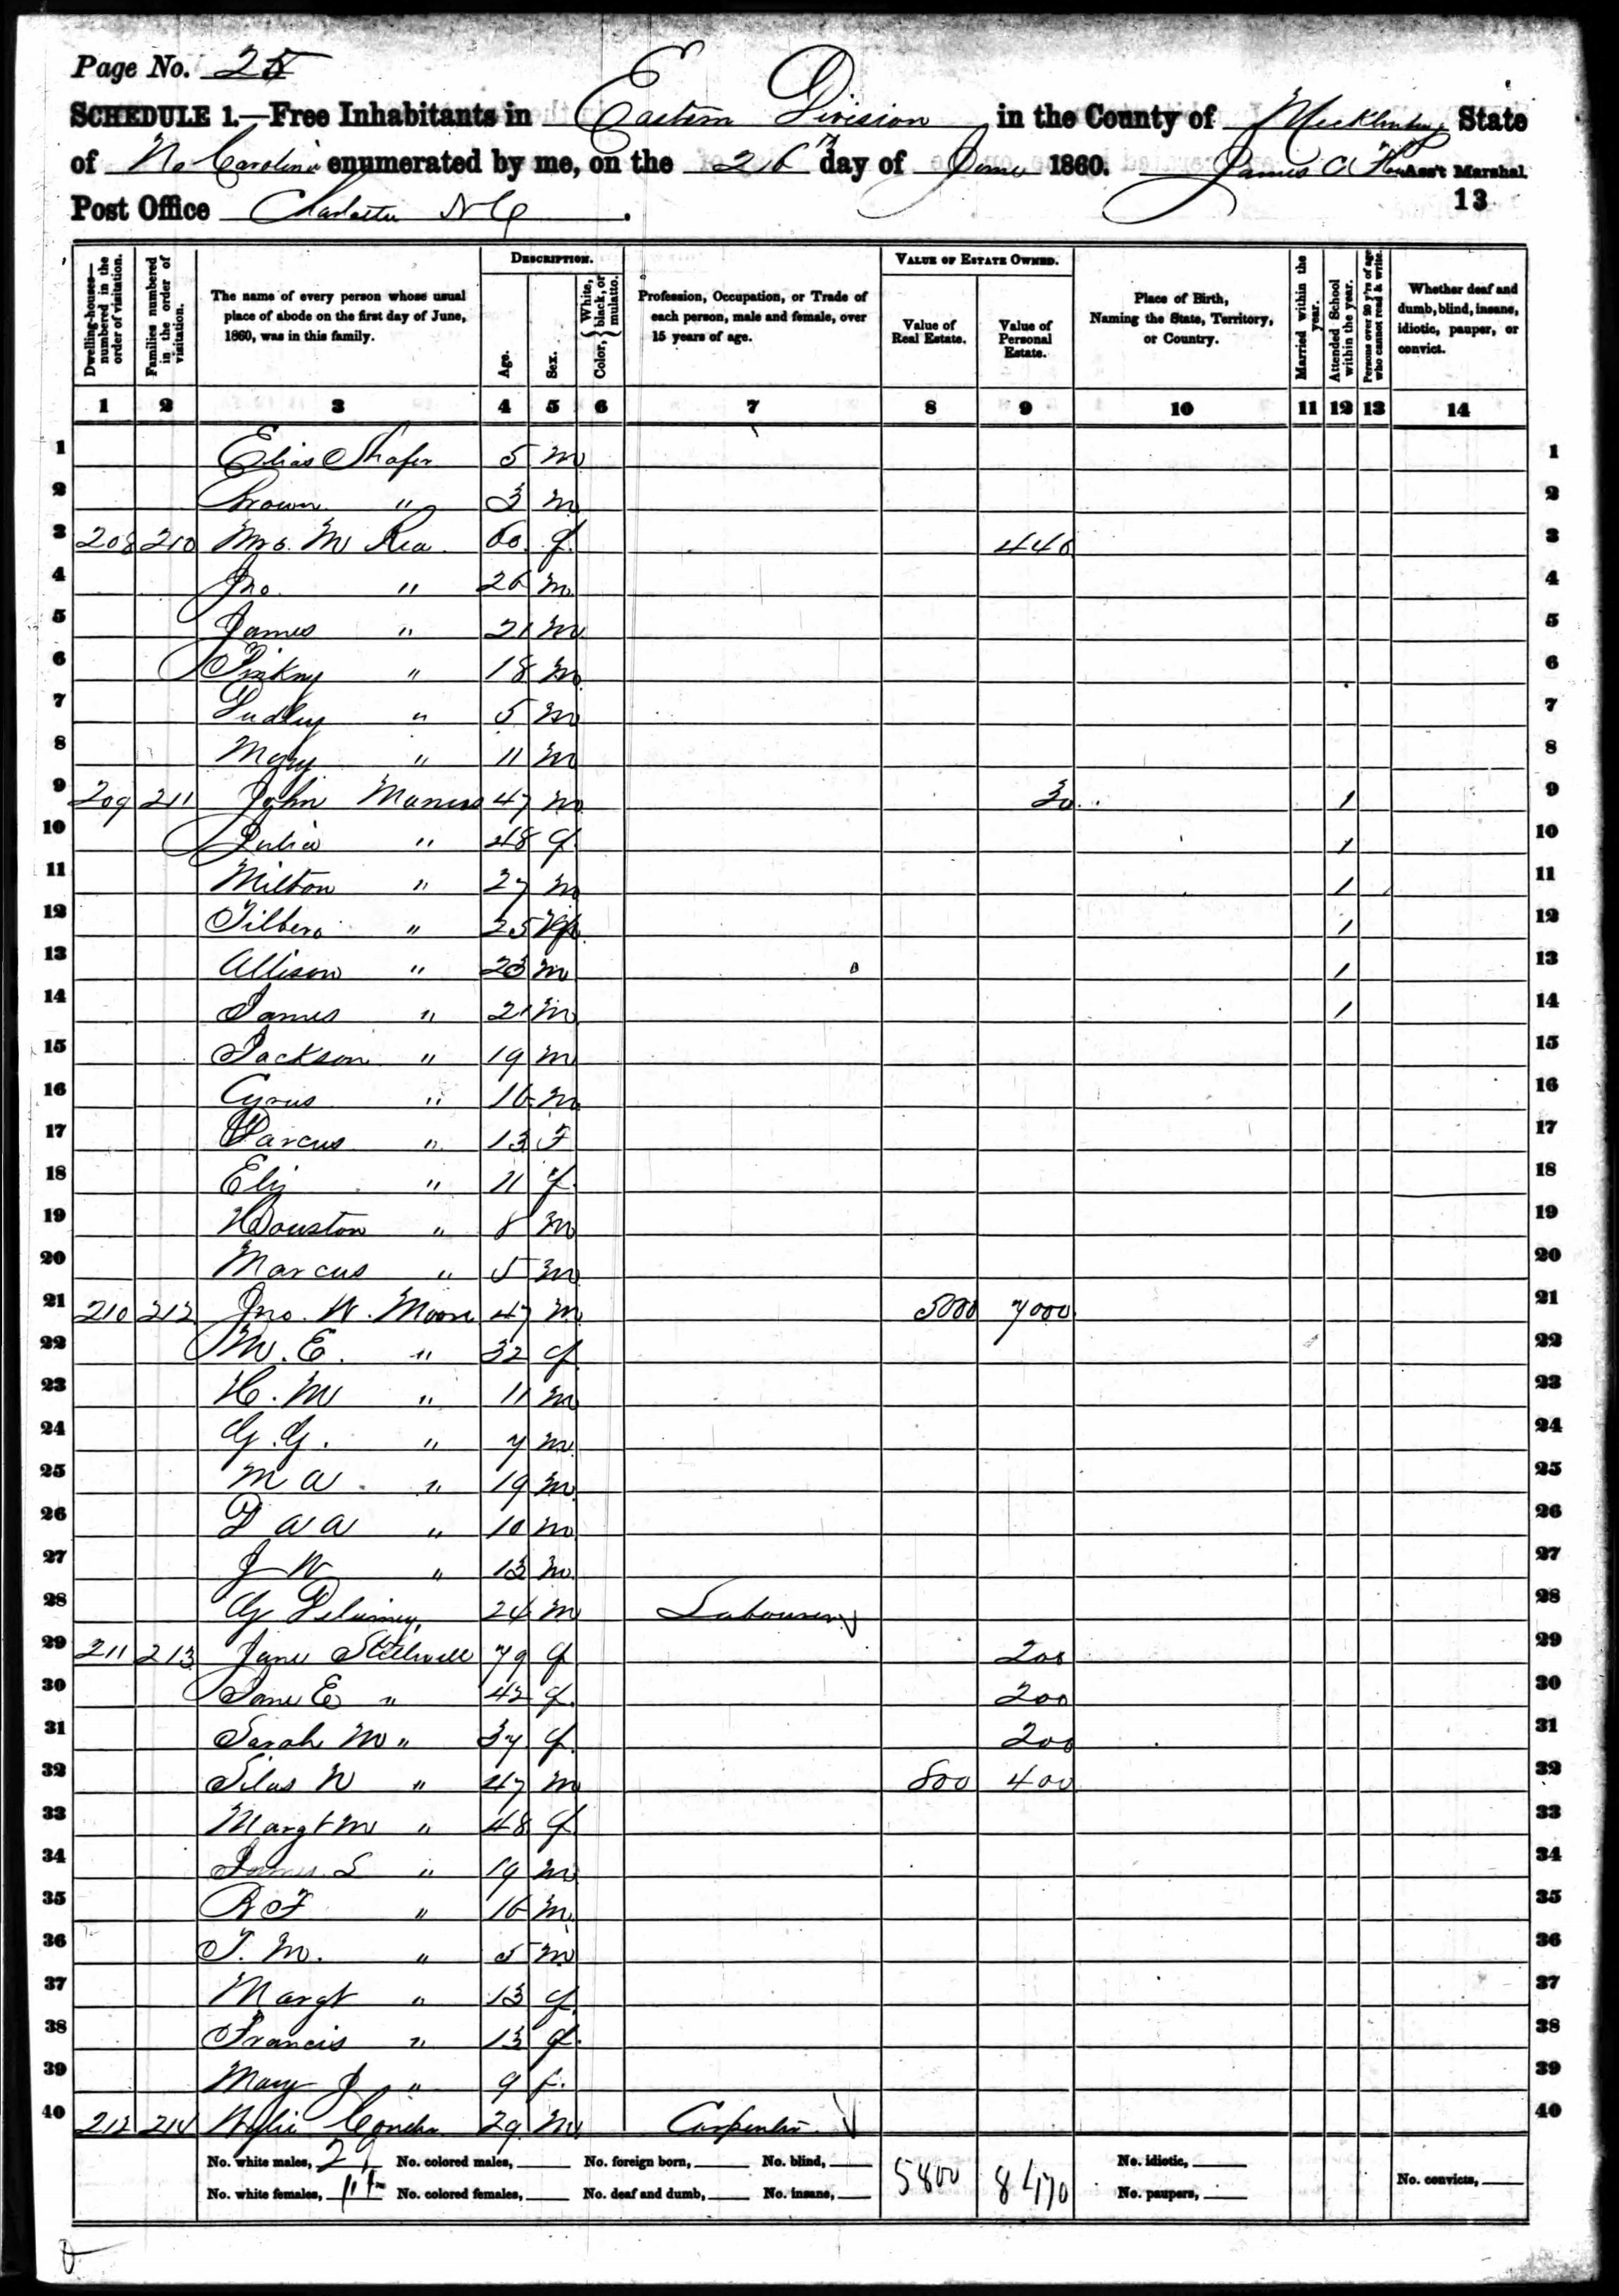 1860 Census, showing Poor House in Mecklenburg County